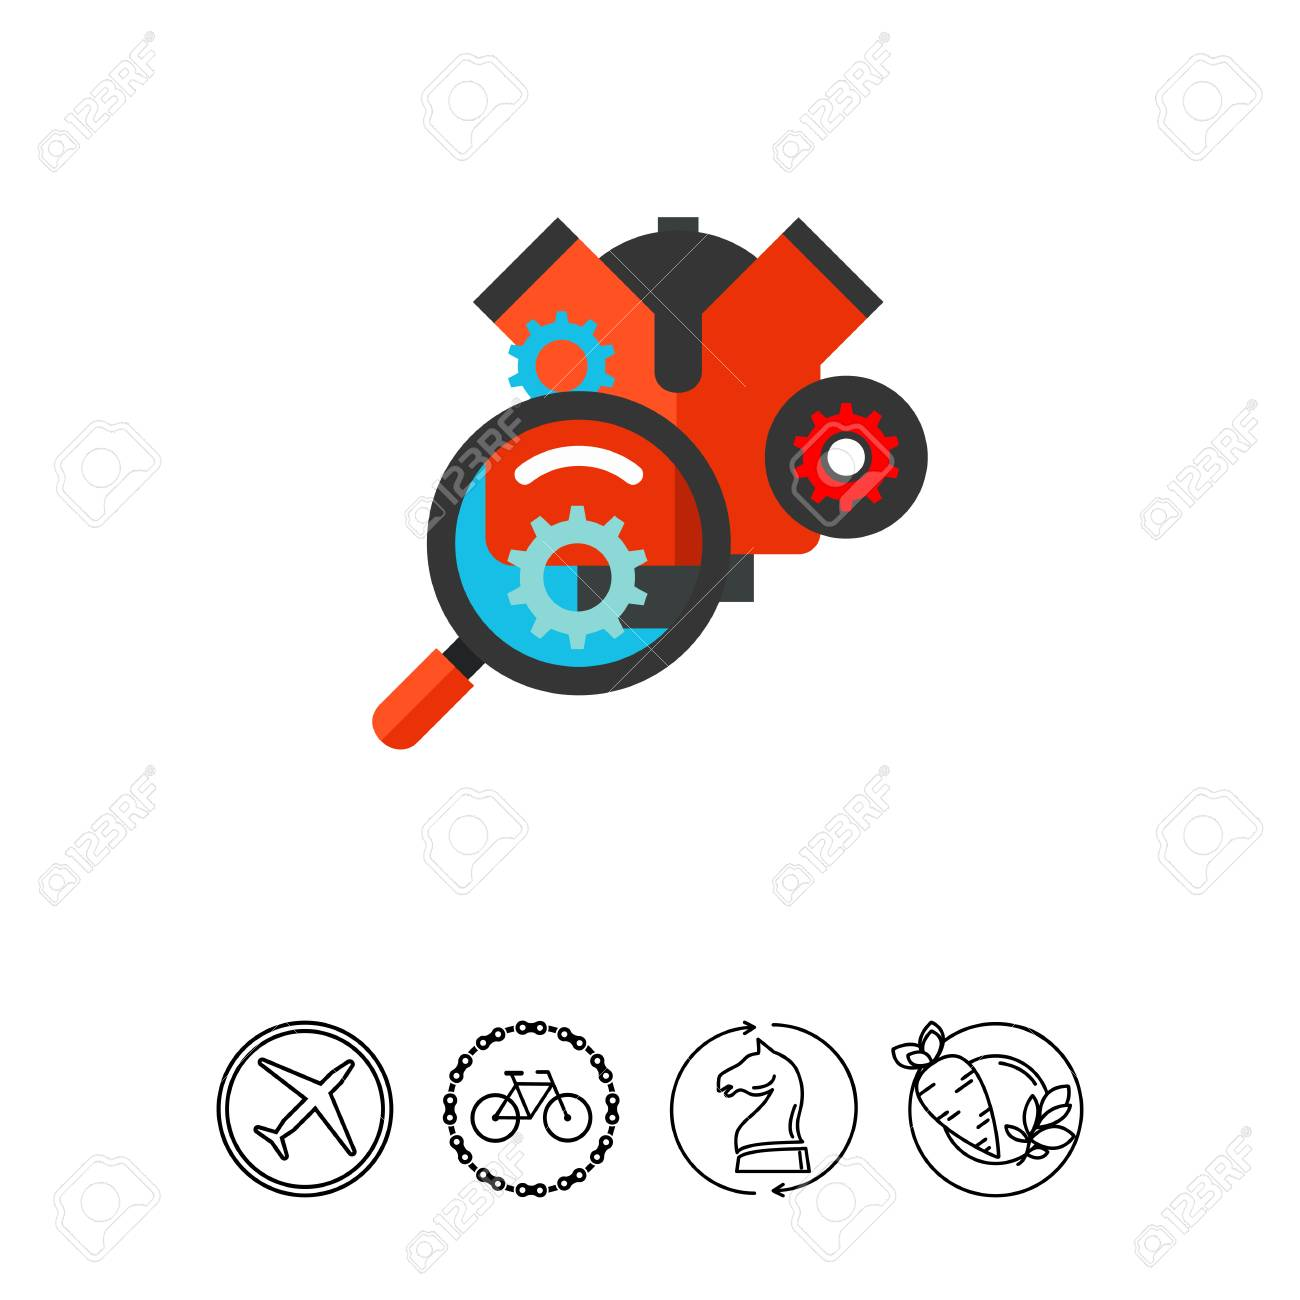 Car engine diagnostic repair icon royalty free cliparts vectors car engine diagnostic repair icon stock vector 79527081 biocorpaavc Gallery